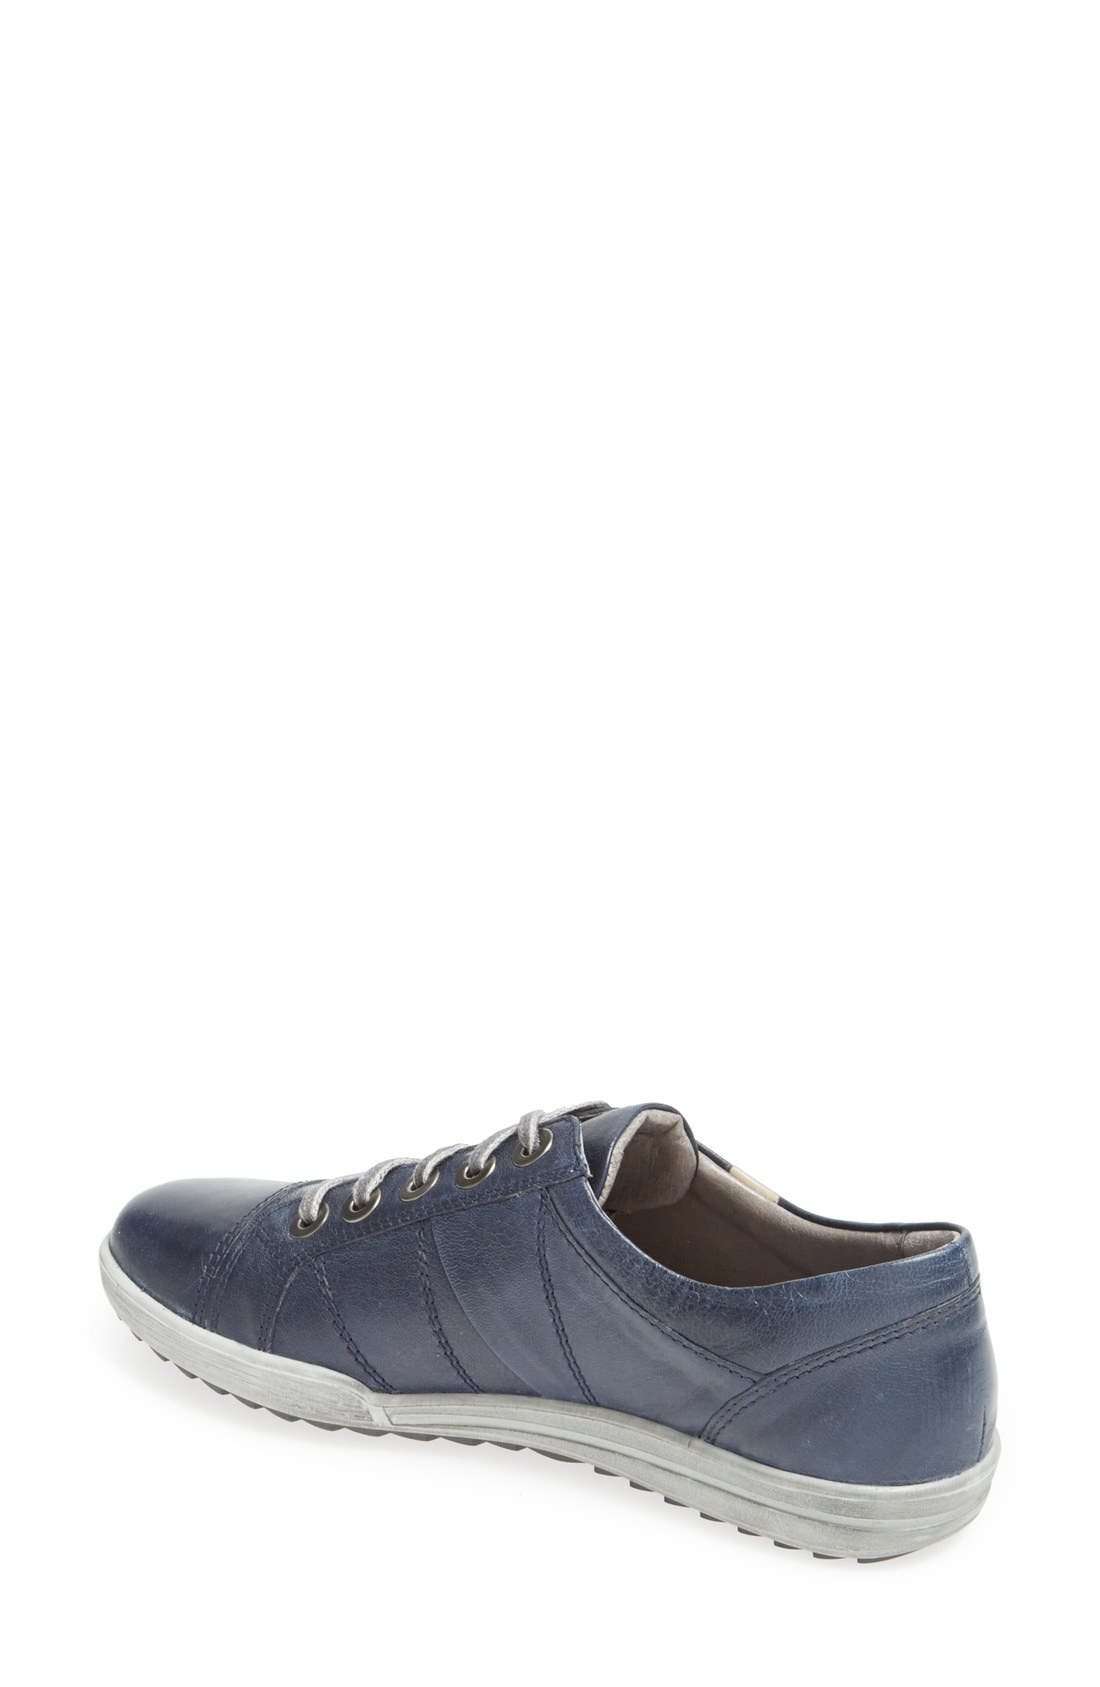 'Dany 05' Leather Sneaker,                             Alternate thumbnail 50, color,